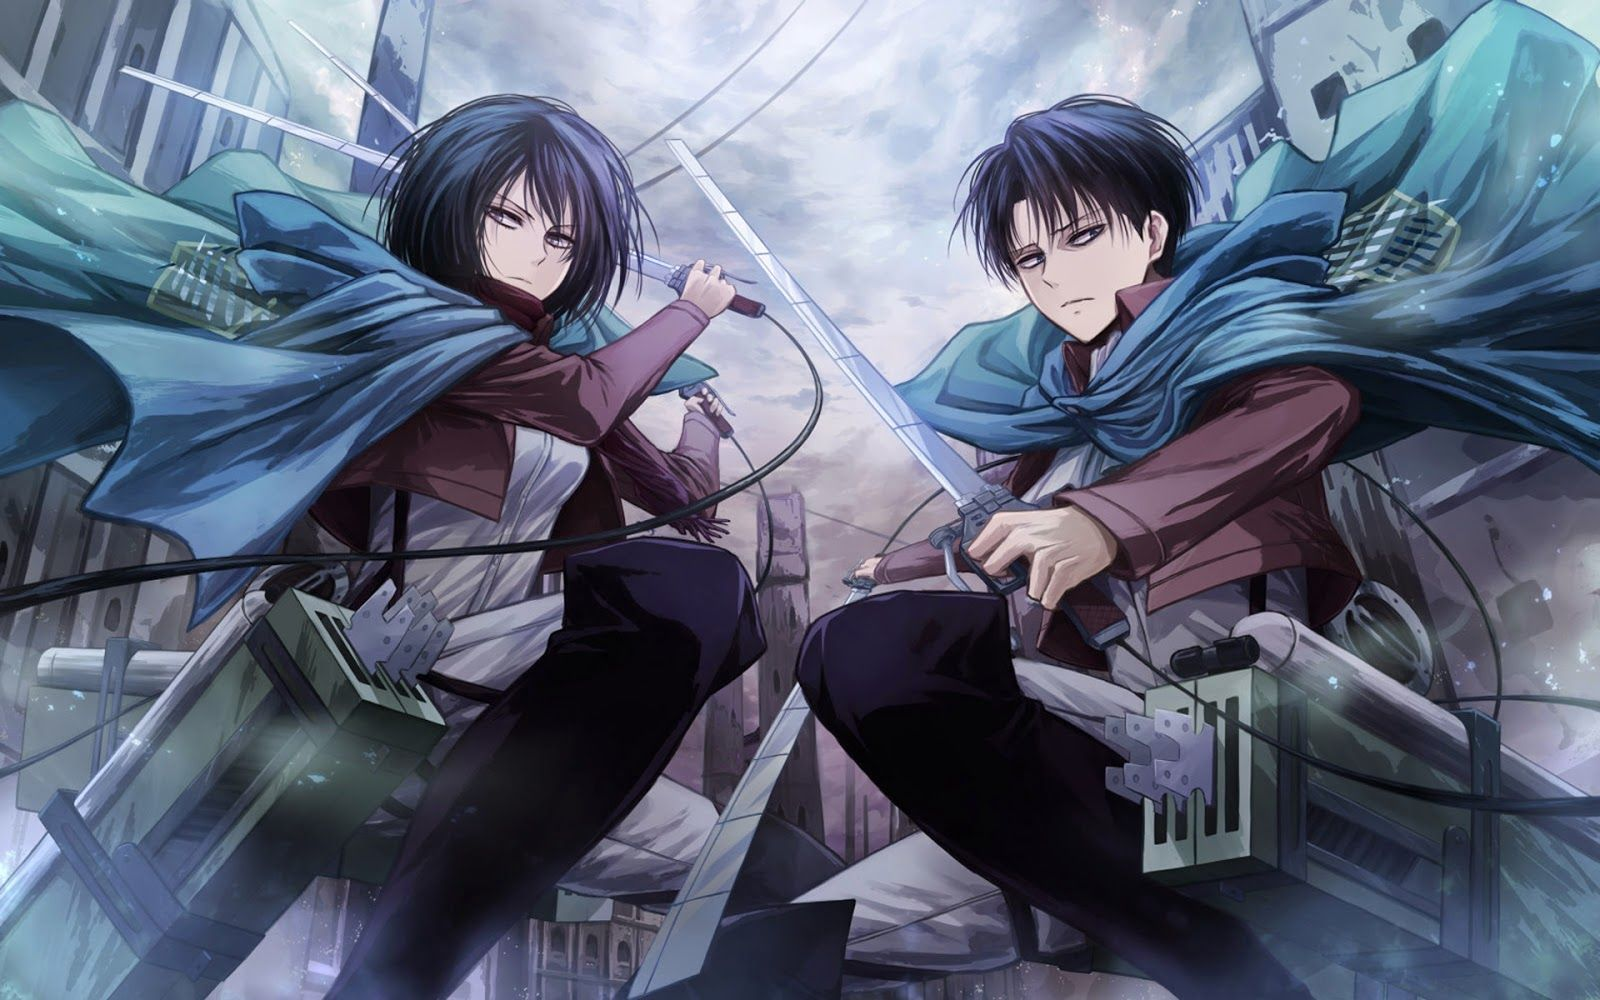 Mikasa Ackerman And Levi Attack On Titan Hd Wallpaper X